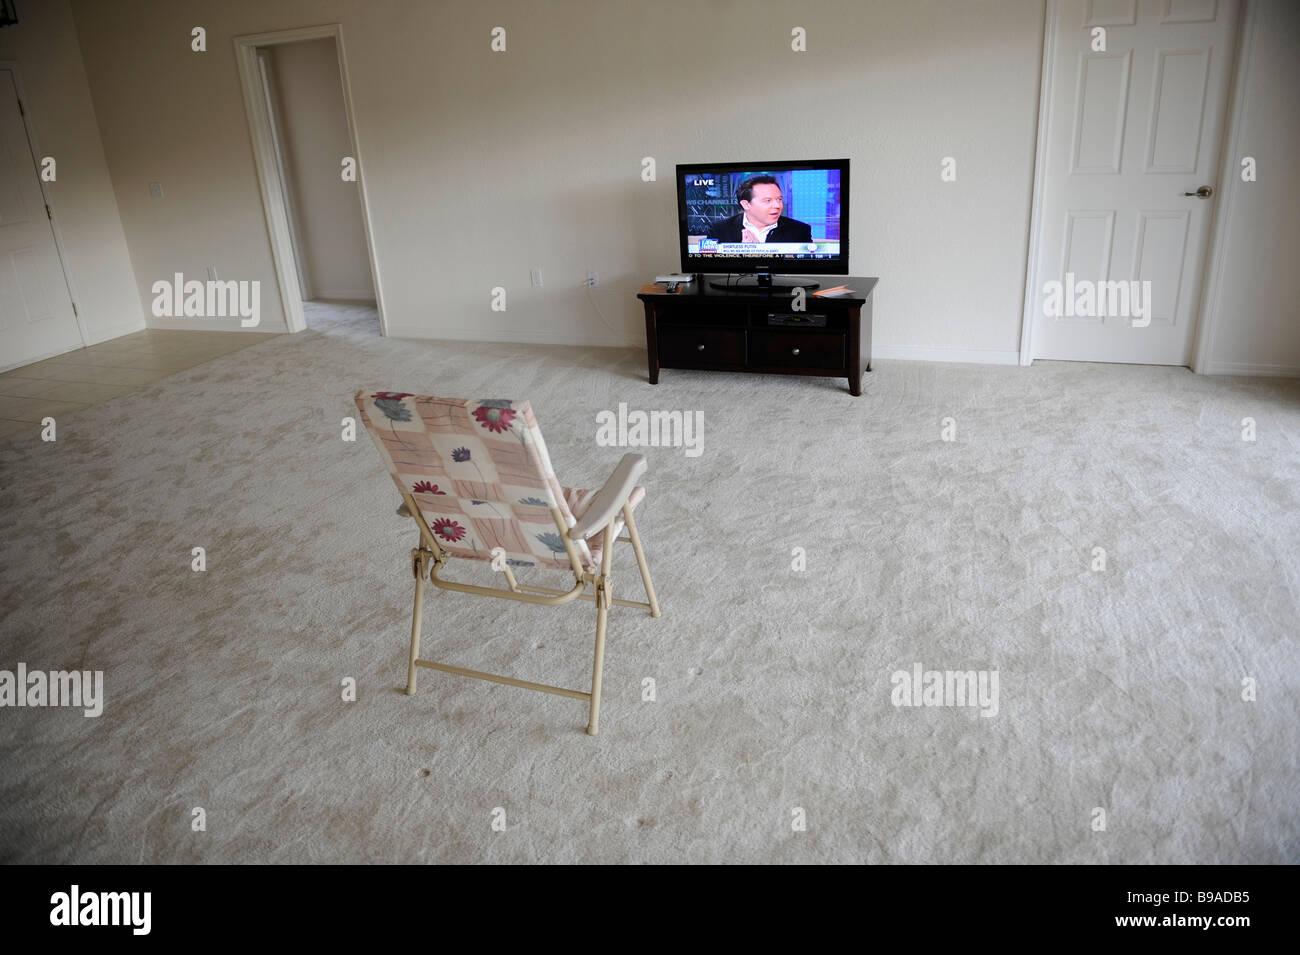 flat panel tv stock photos & flat panel tv stock images - alamy